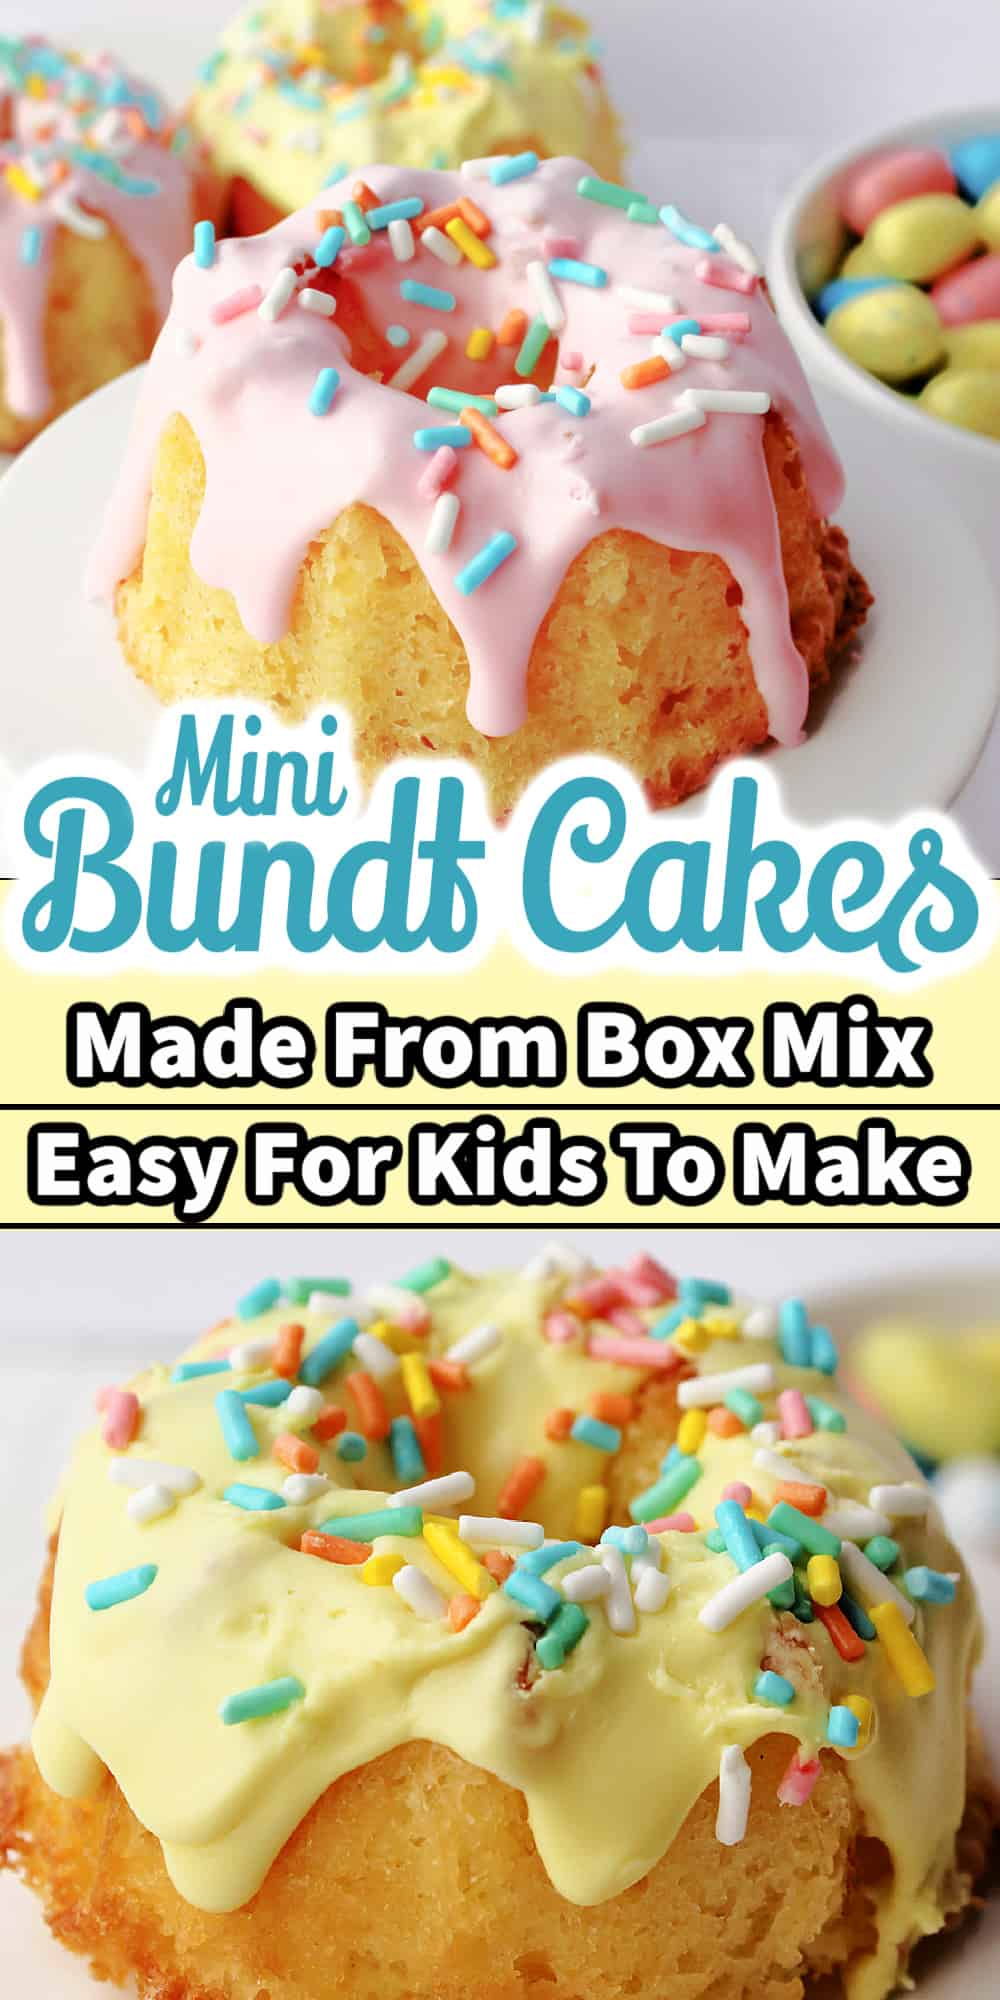 easter mini bundt cakes with text